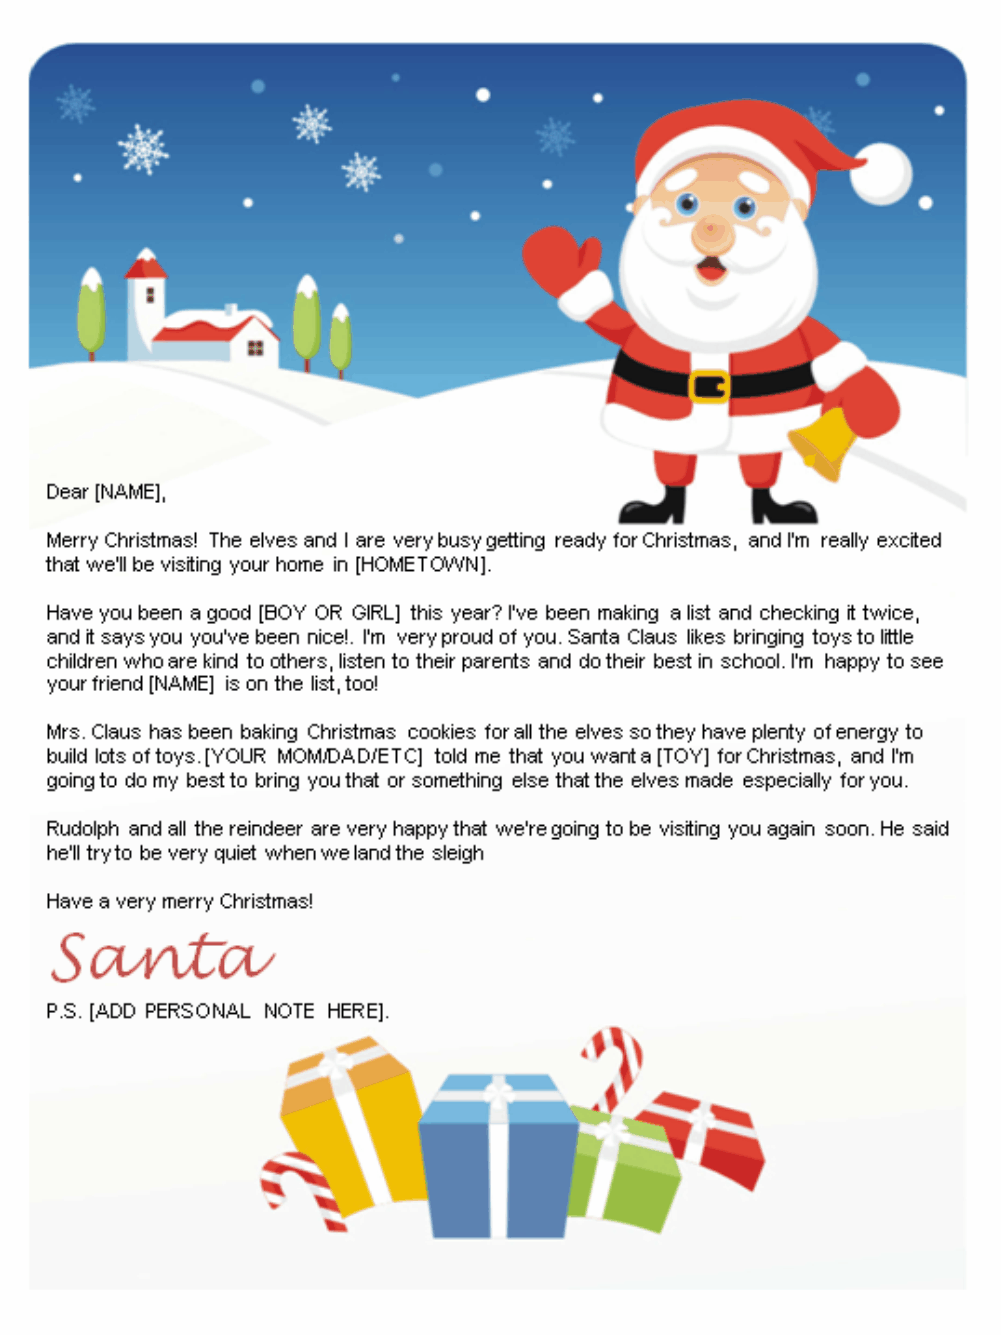 santa letters to print - gifts design